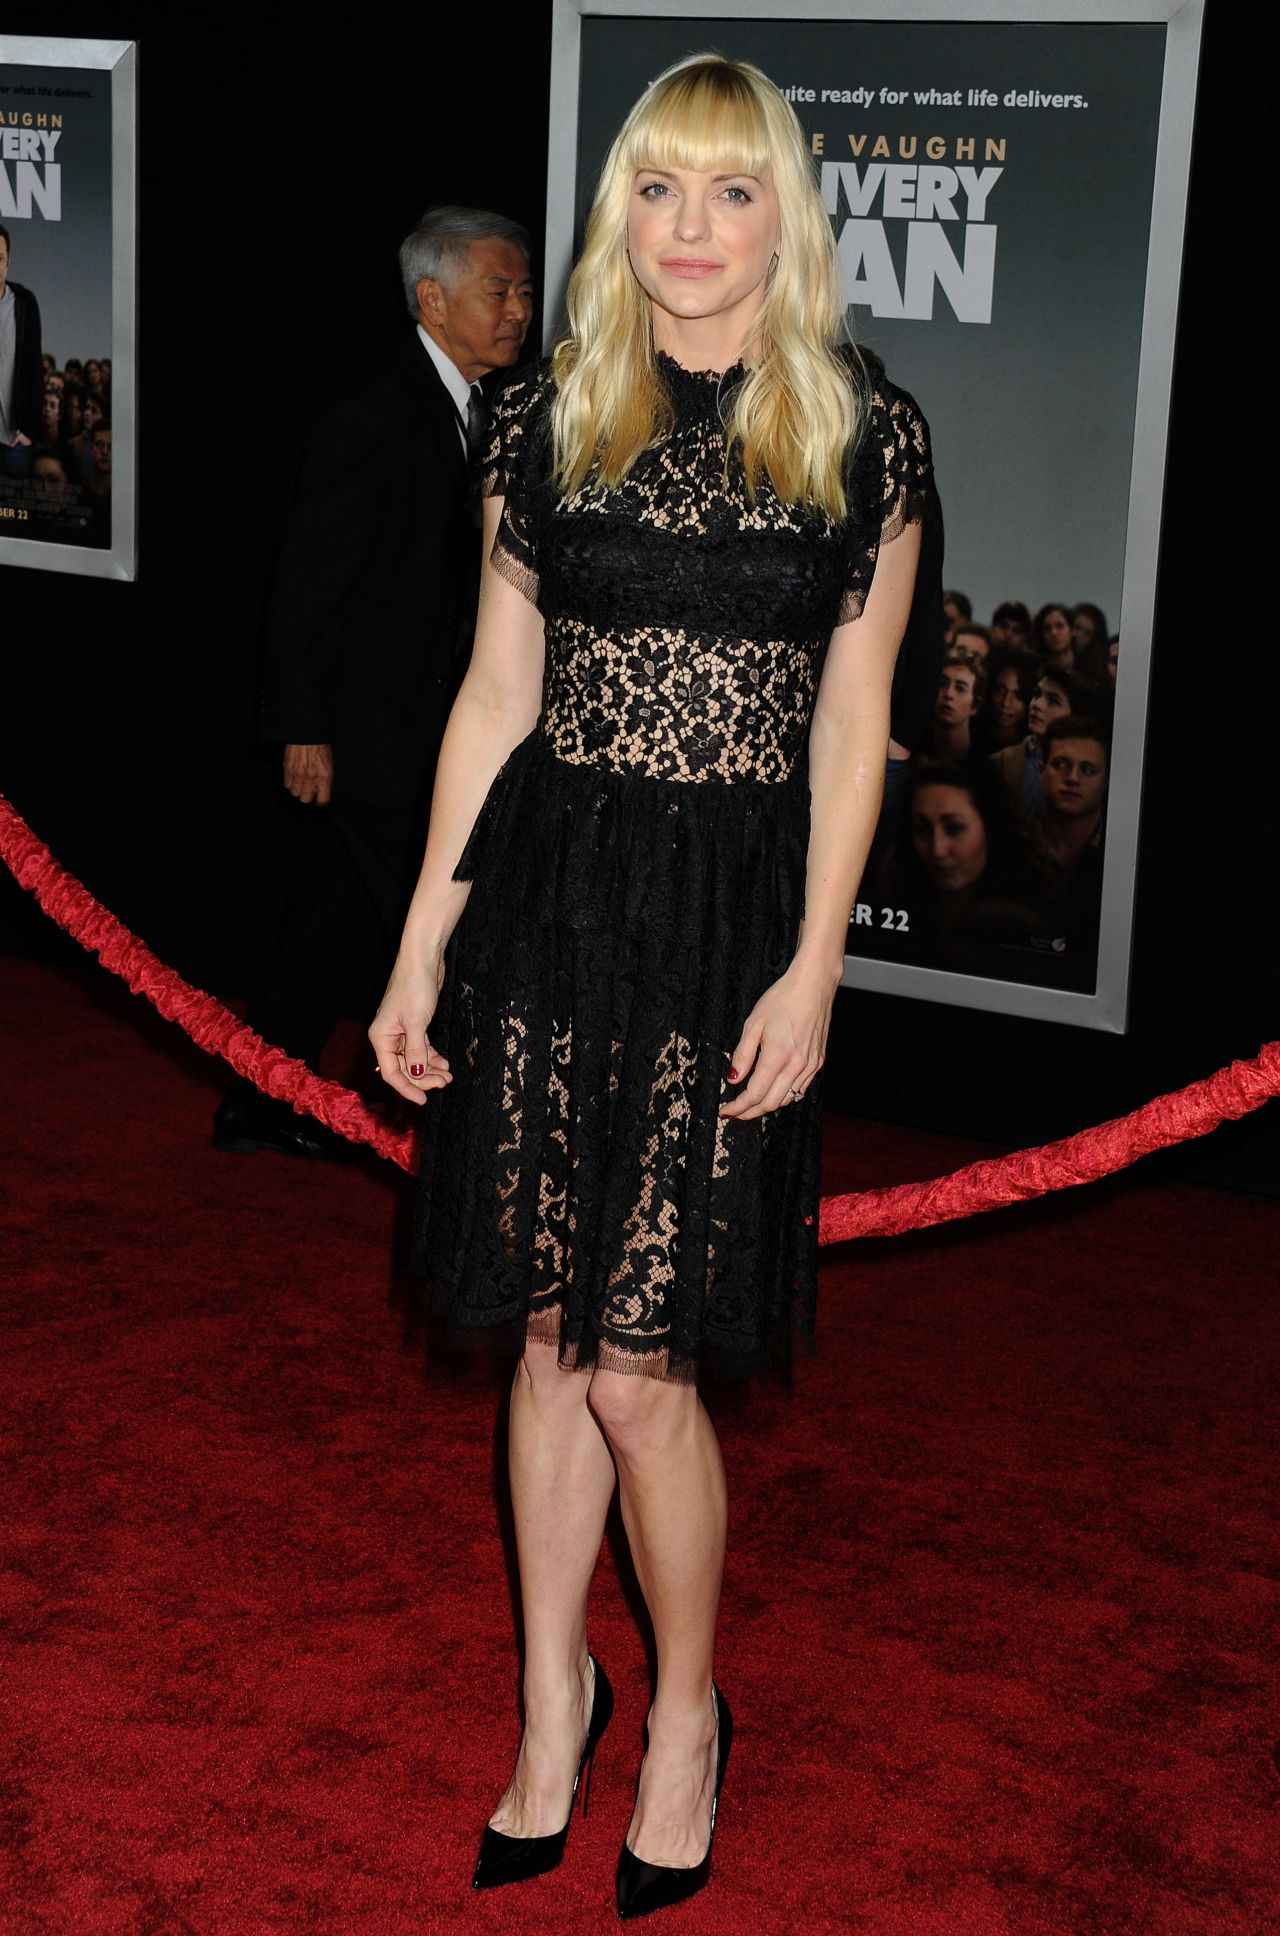 Anna Faris On Red Carpet Delivery Man Movie Premiere In